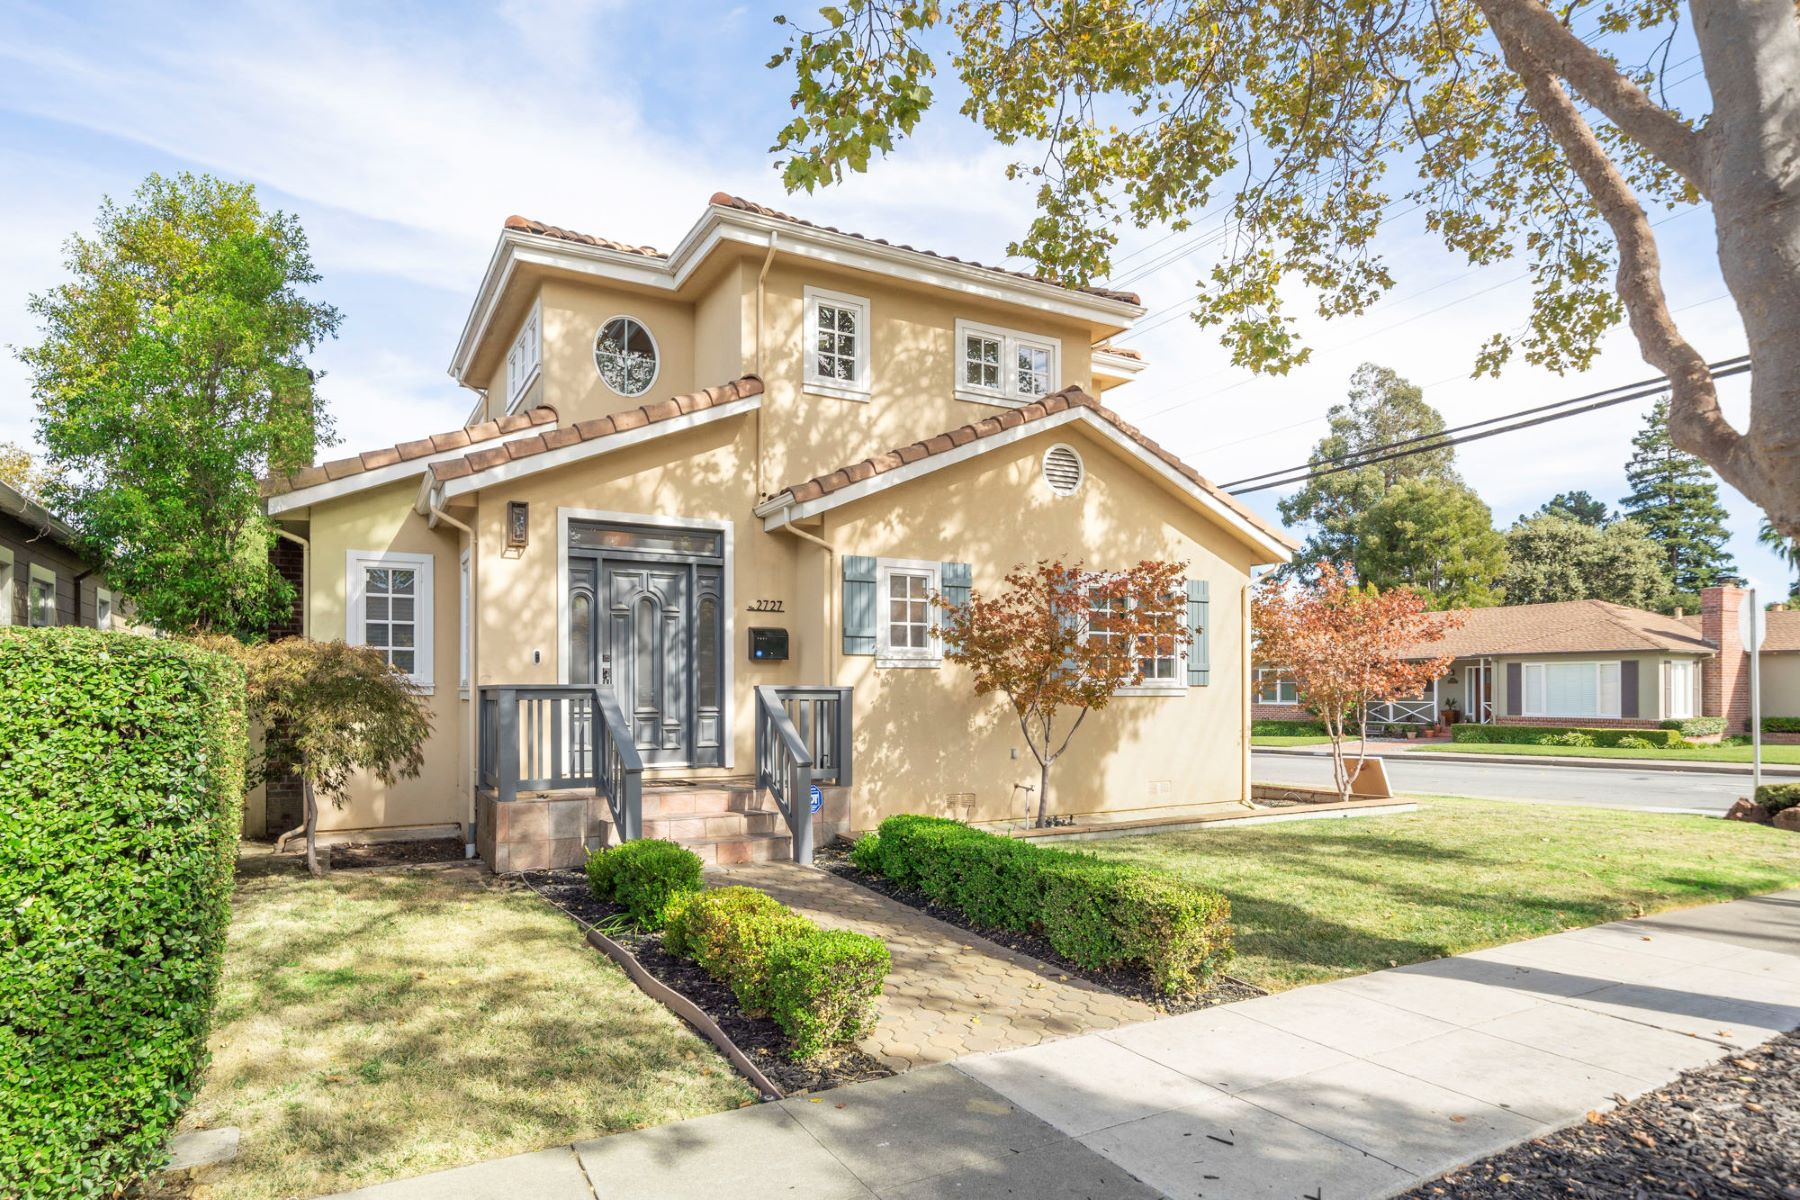 Single Family Homes for Sale at Comfort and Convenience in the Heart of San Mateo 2727 Isabelle Avenue San Mateo, California 94403 United States